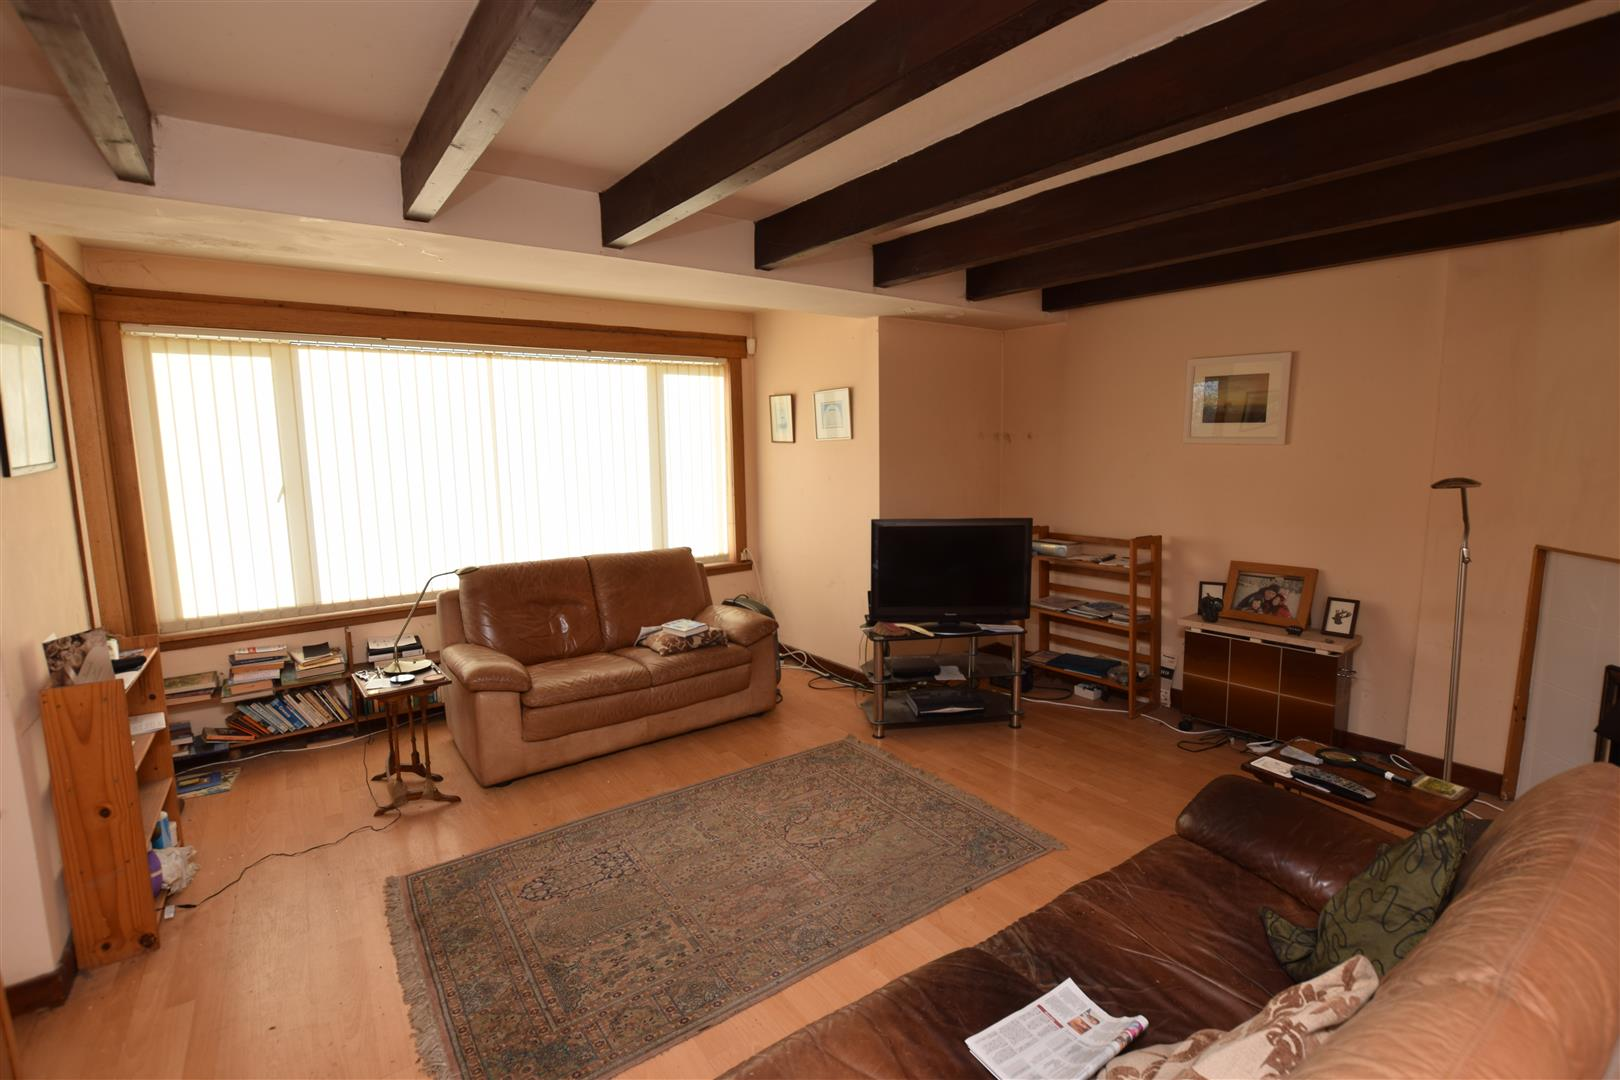 The Orchard, Cairneyhill Road, Bankfoot, Perth, Perthshire, PH1 4AG, UK